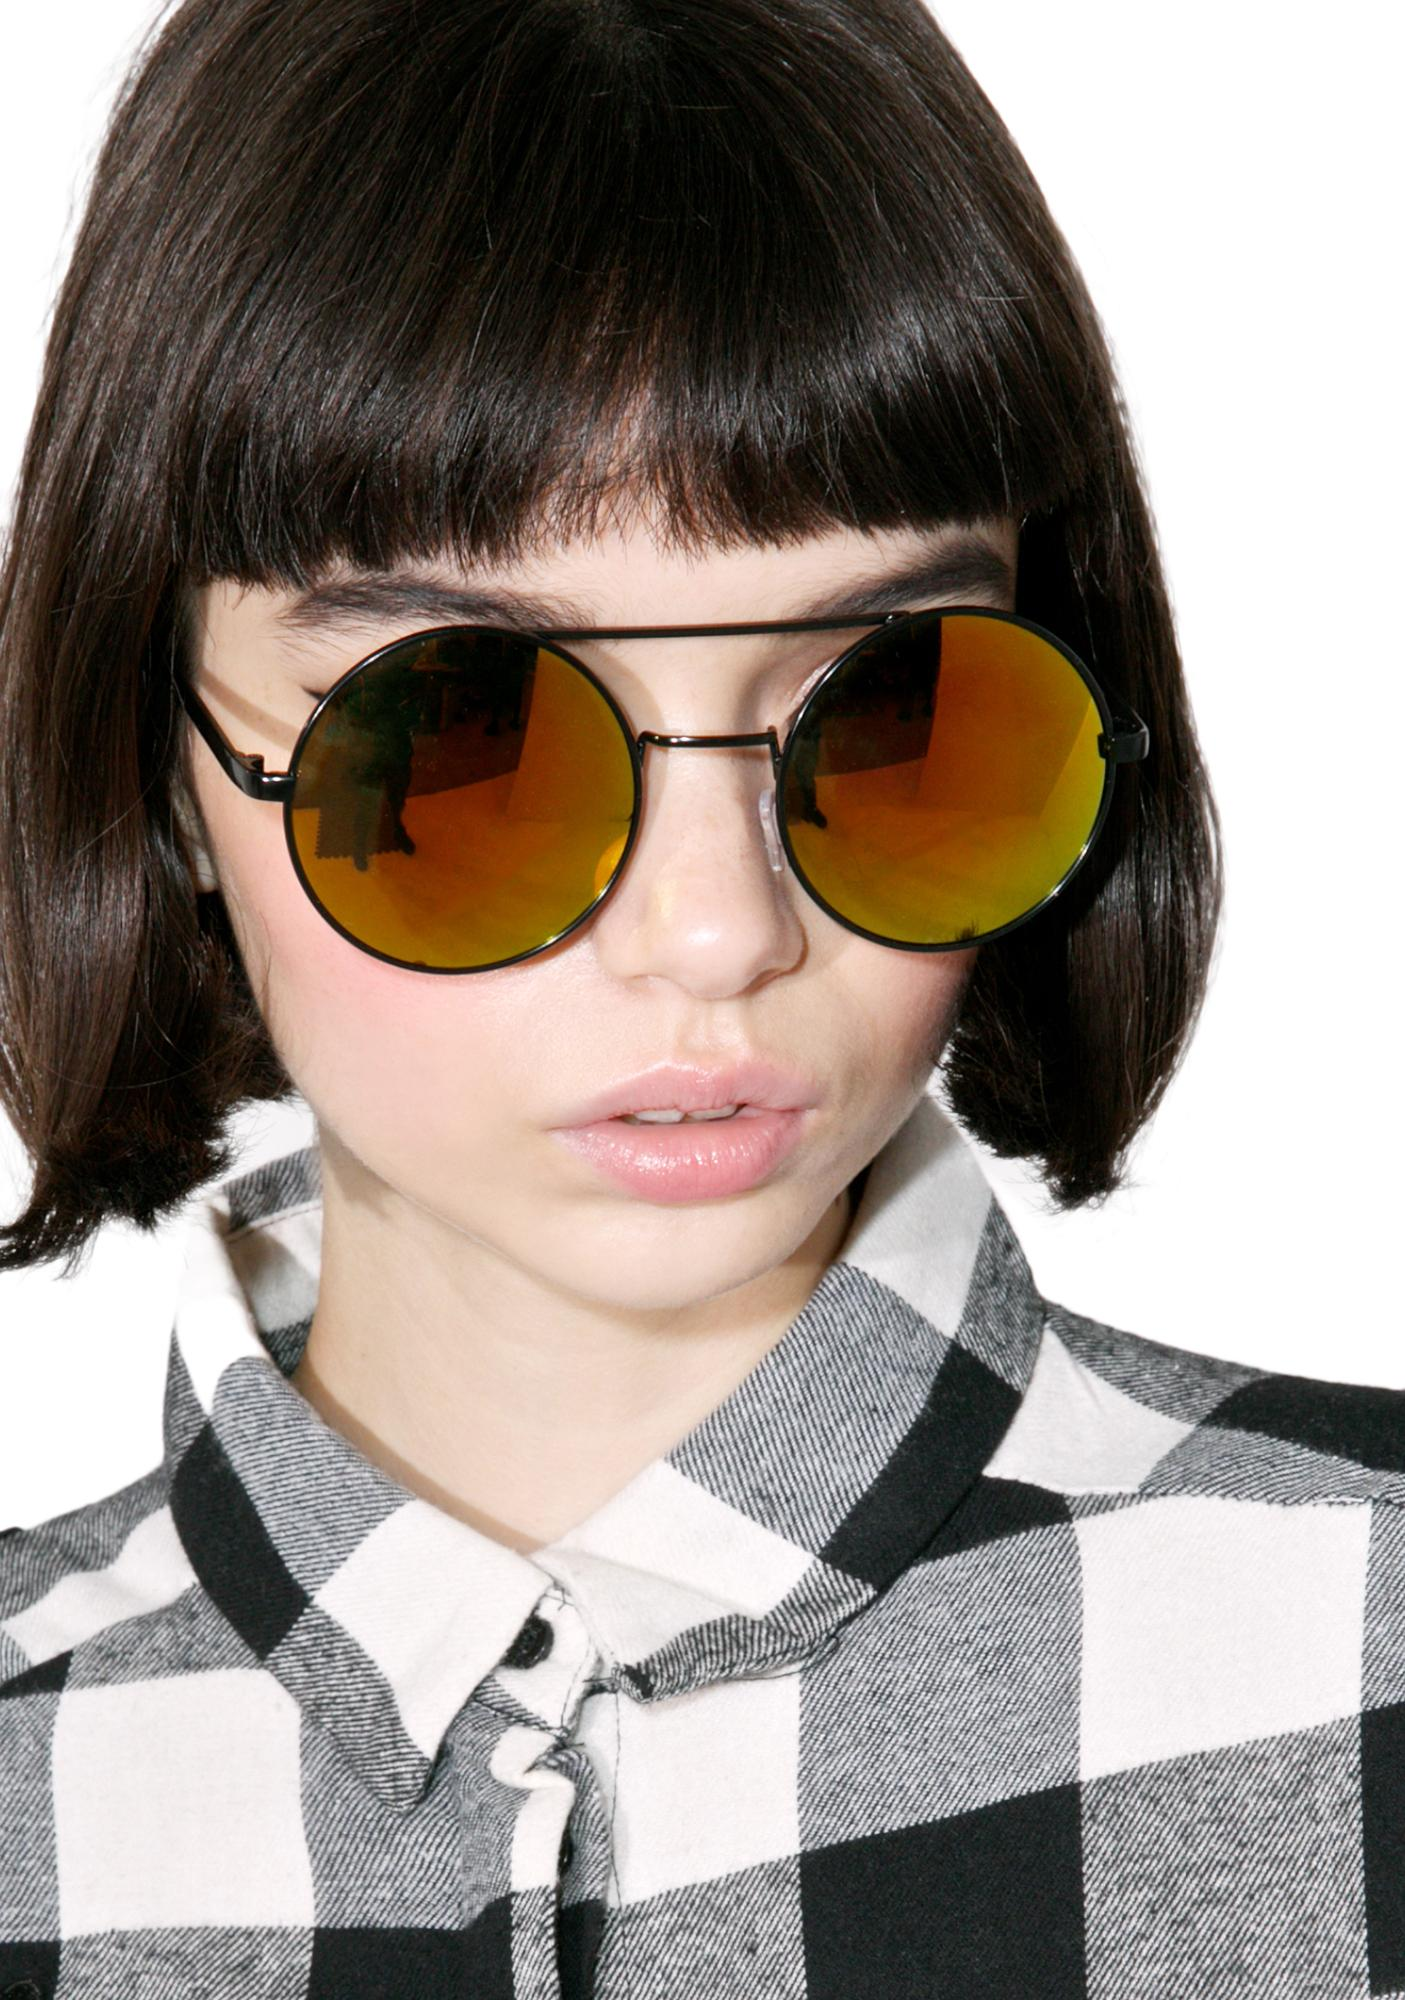 Deluxxx Sunglasses